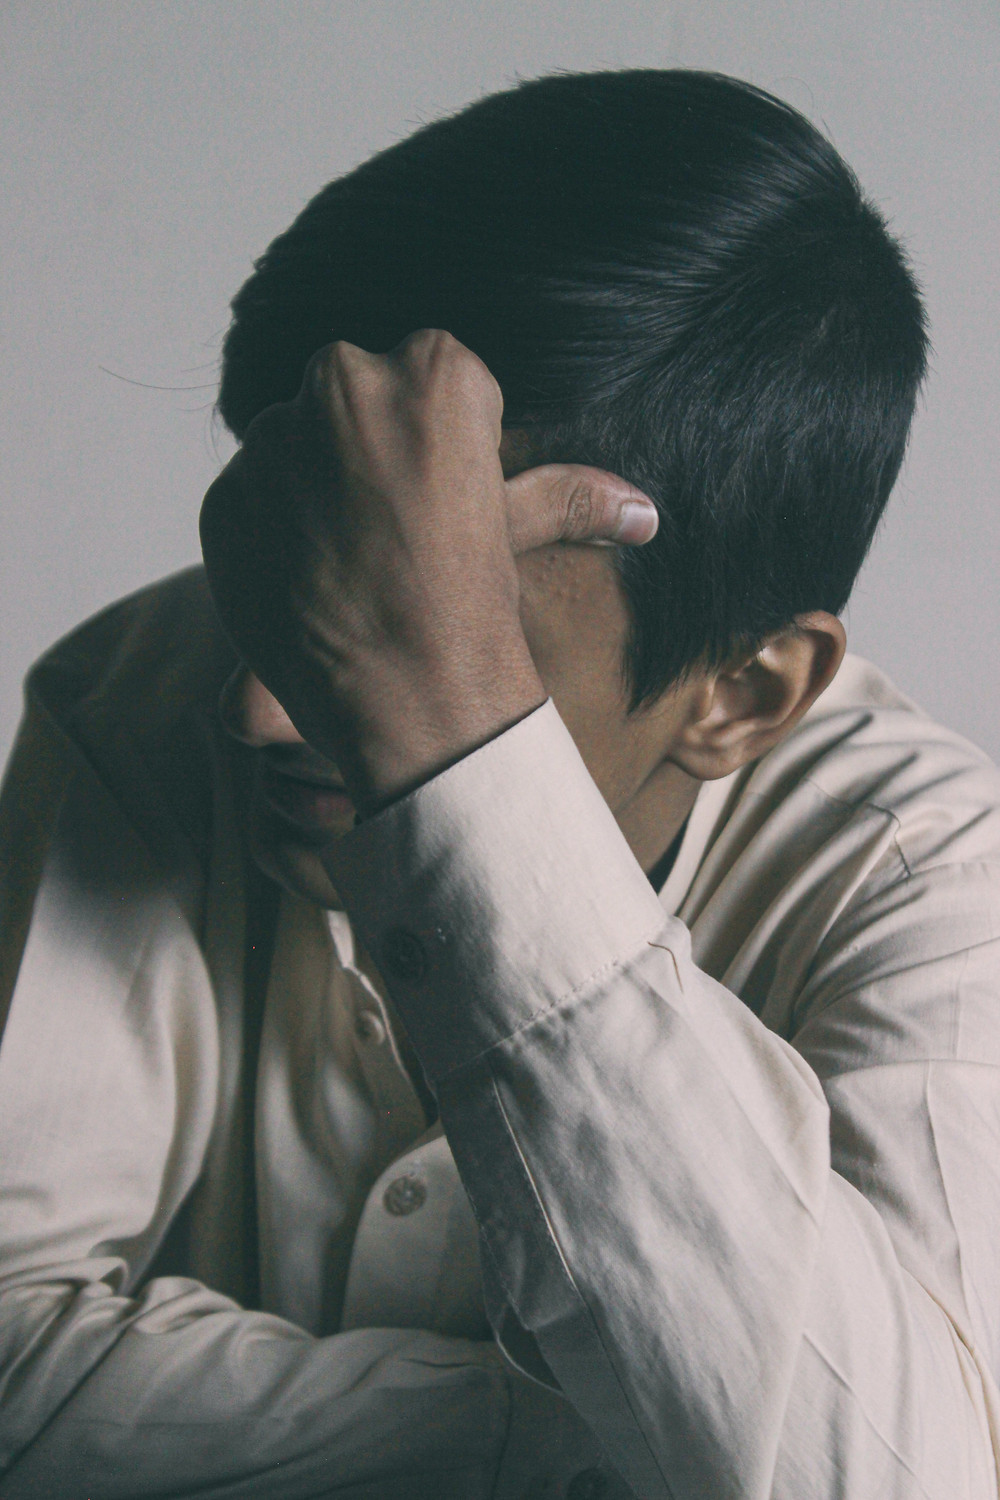 A South Asian male leans on his elbow and anxiously thinks to himself.